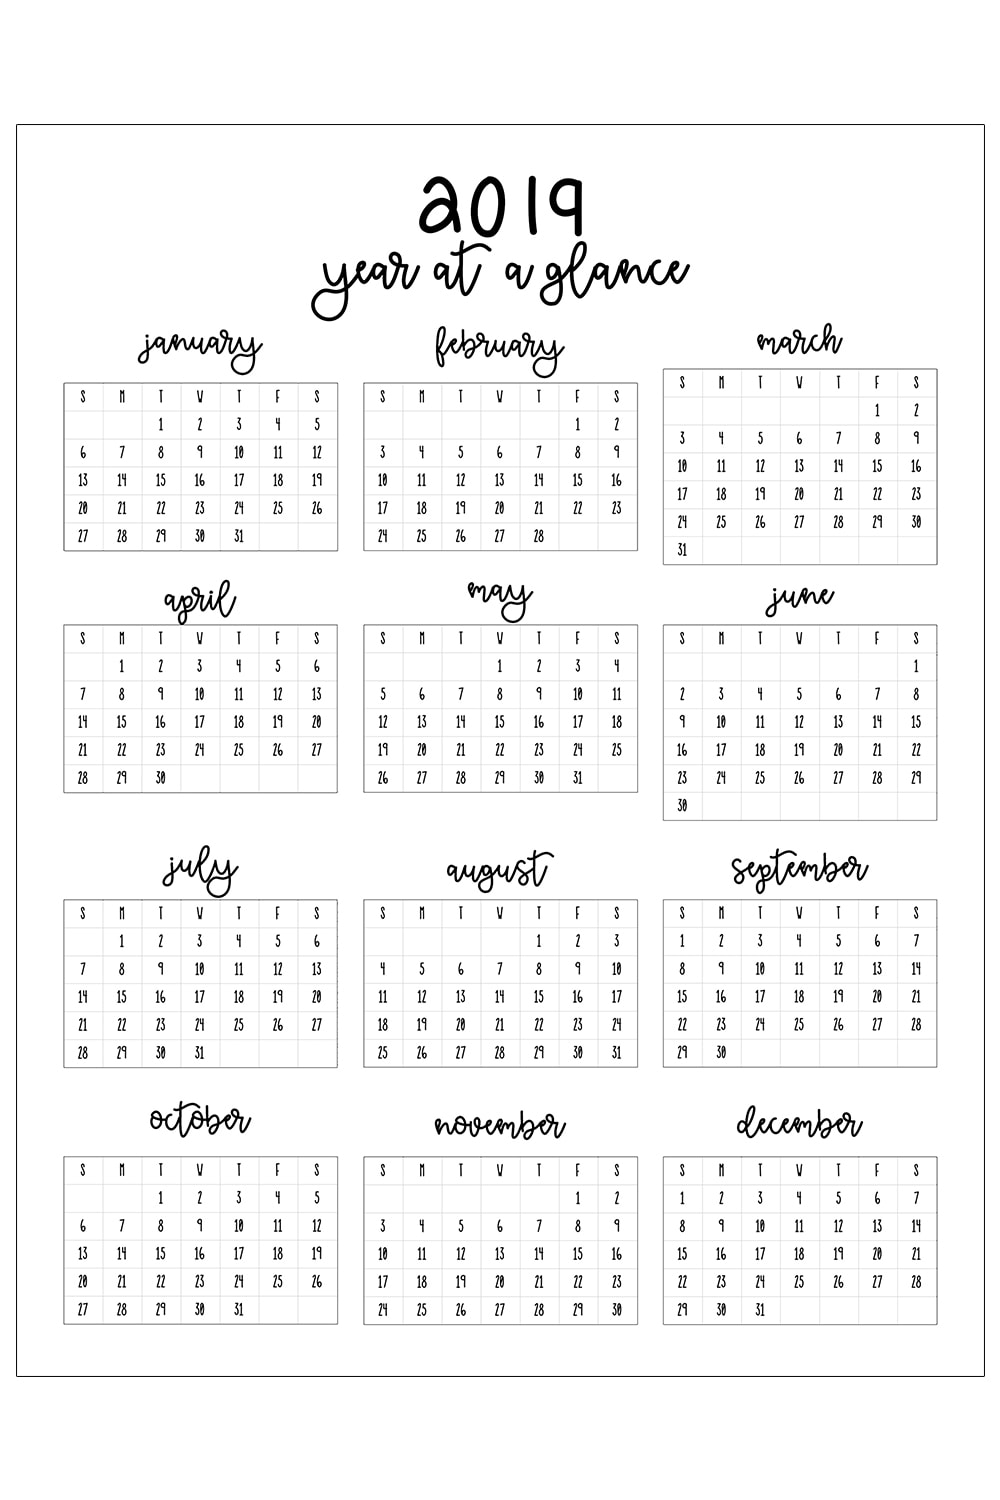 photo regarding Calendars Free Printable referred to as 2019 Printable Calendar